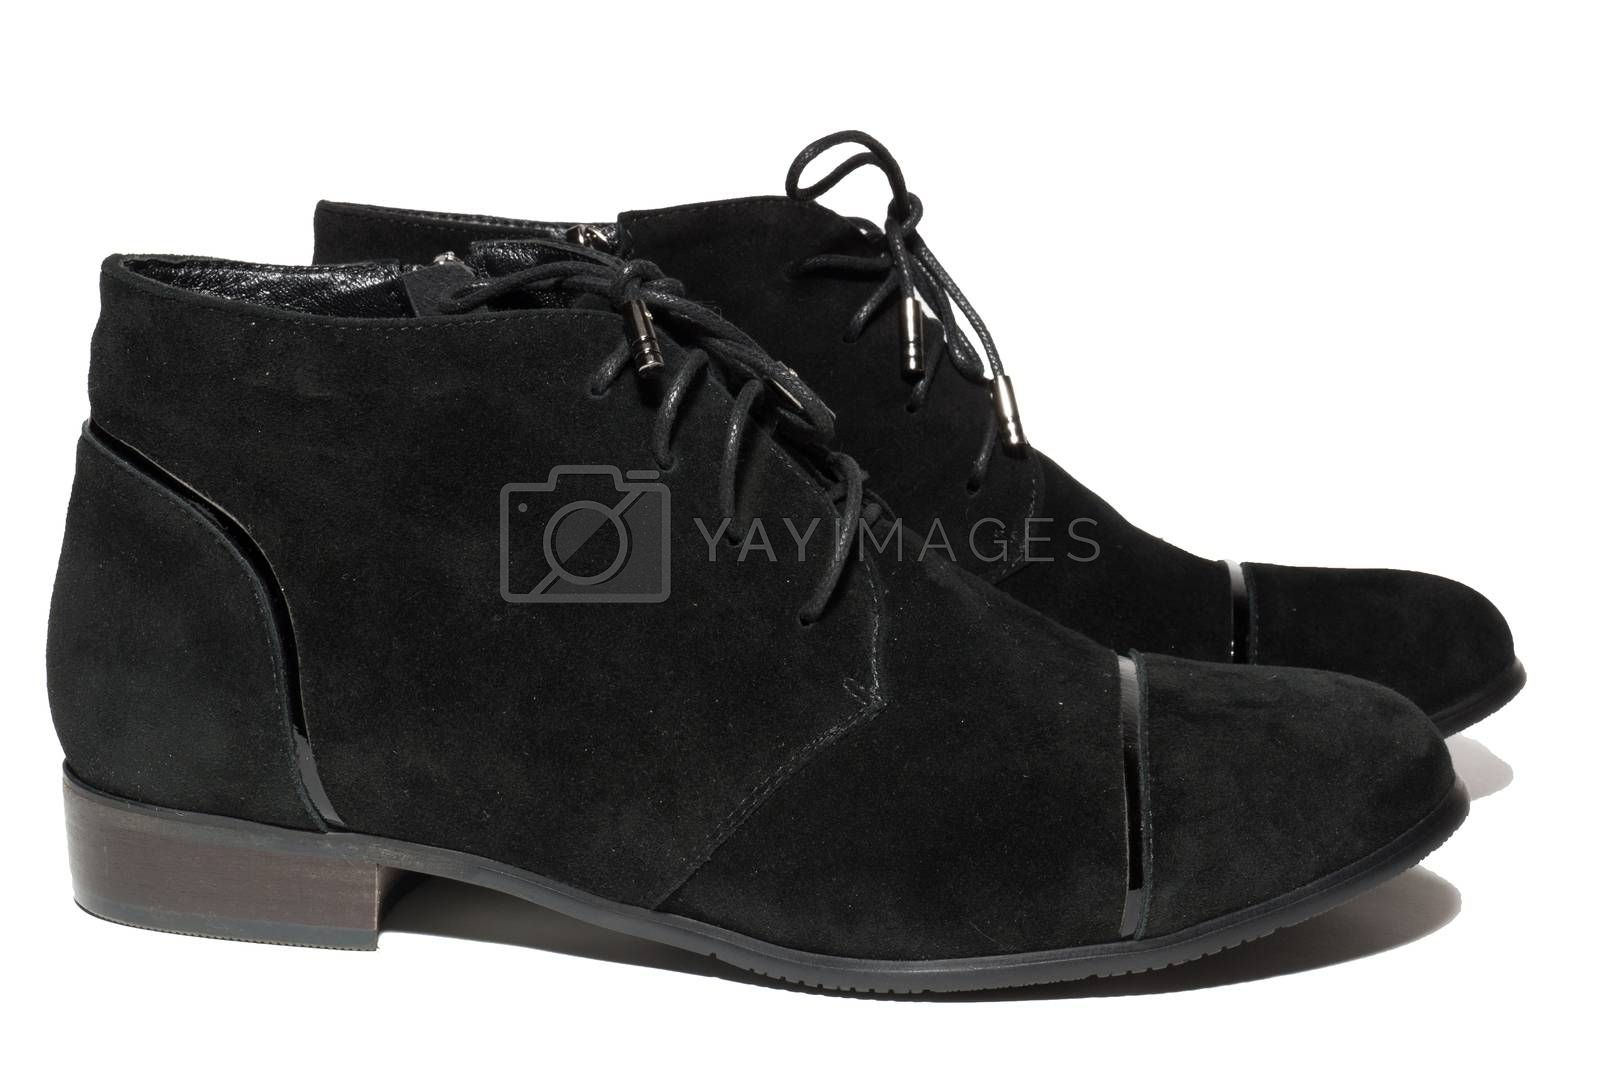 The photo shows winter boots on a white background